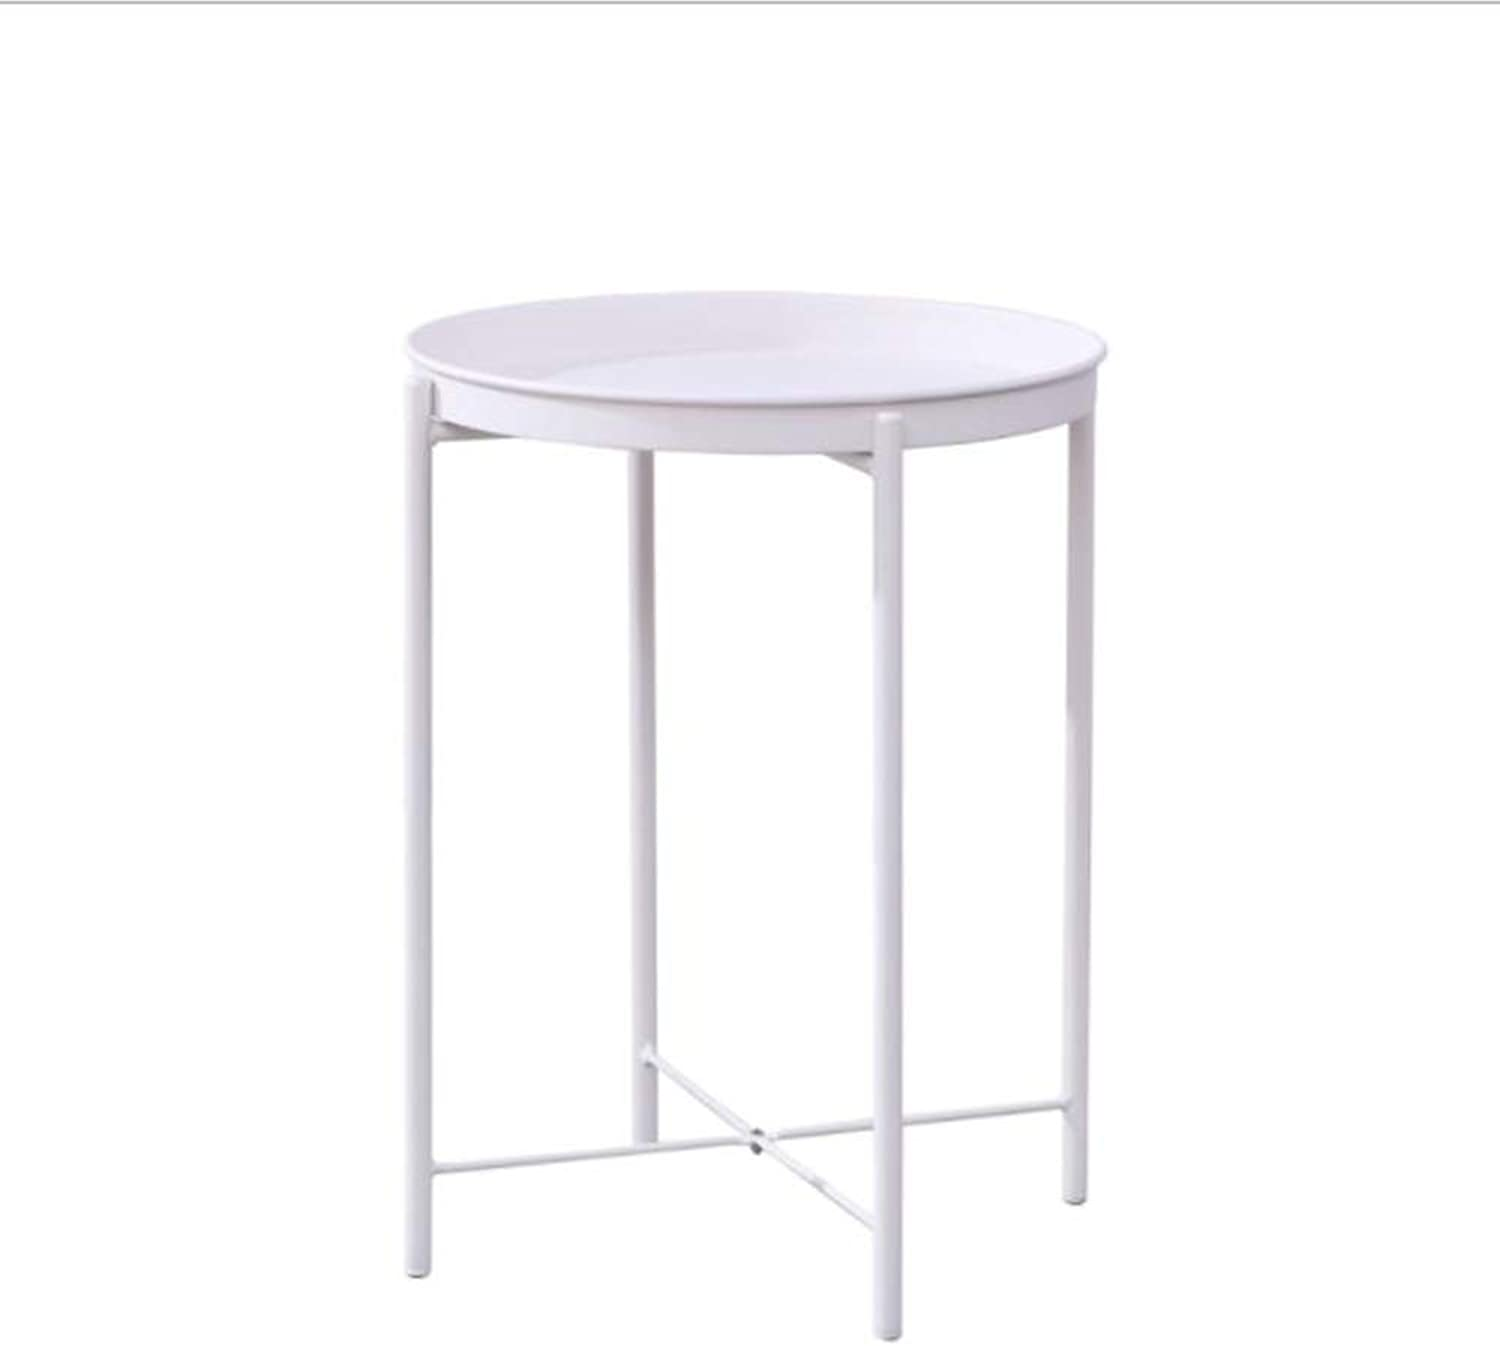 Nordic Modern Simple Round Mini Creative Small Coffee Table Corner Few Simple Bed Foldable Small Round Table White